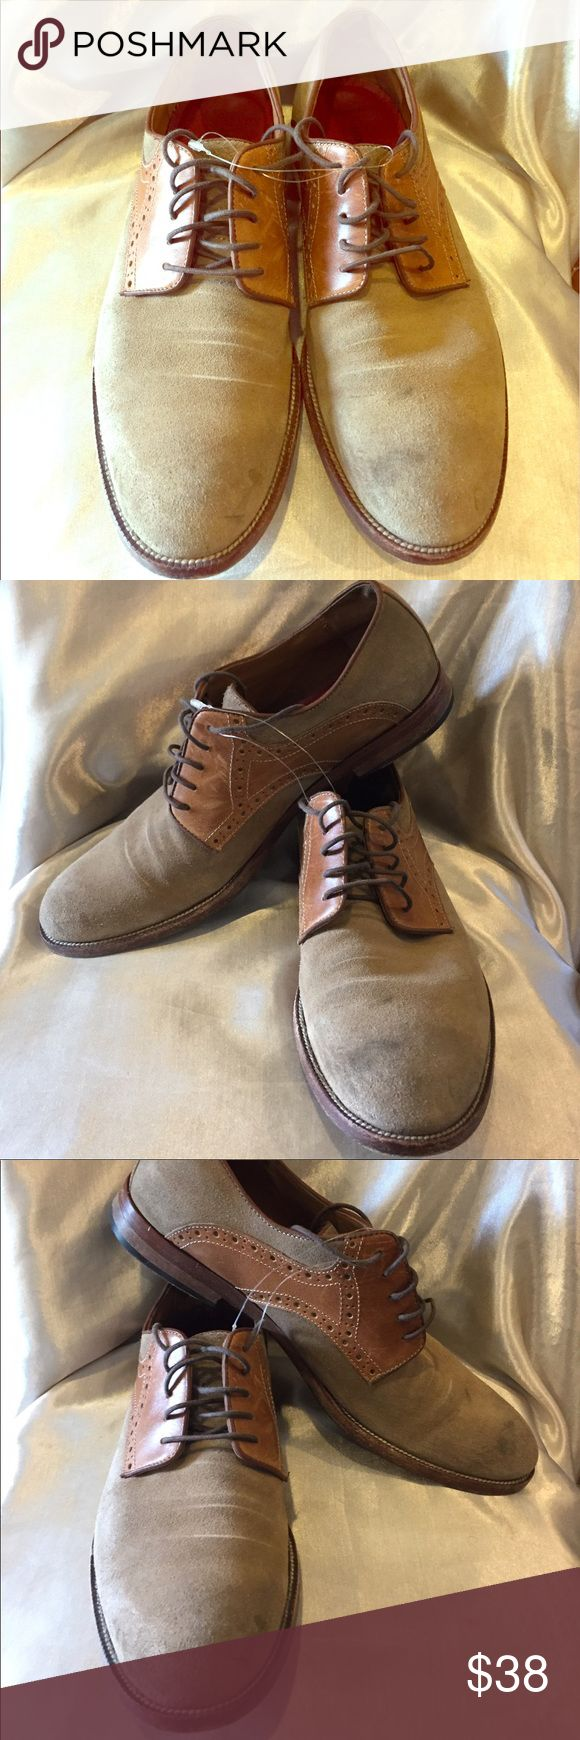 Johnson and Murphy tan and brown suede oxfords 👞 Johnson and Murphy Tan And Brown Suede oxfords 👞 size 10.5 need cleaning lots of life Johnston & Murphy Shoes Oxfords & Derbys